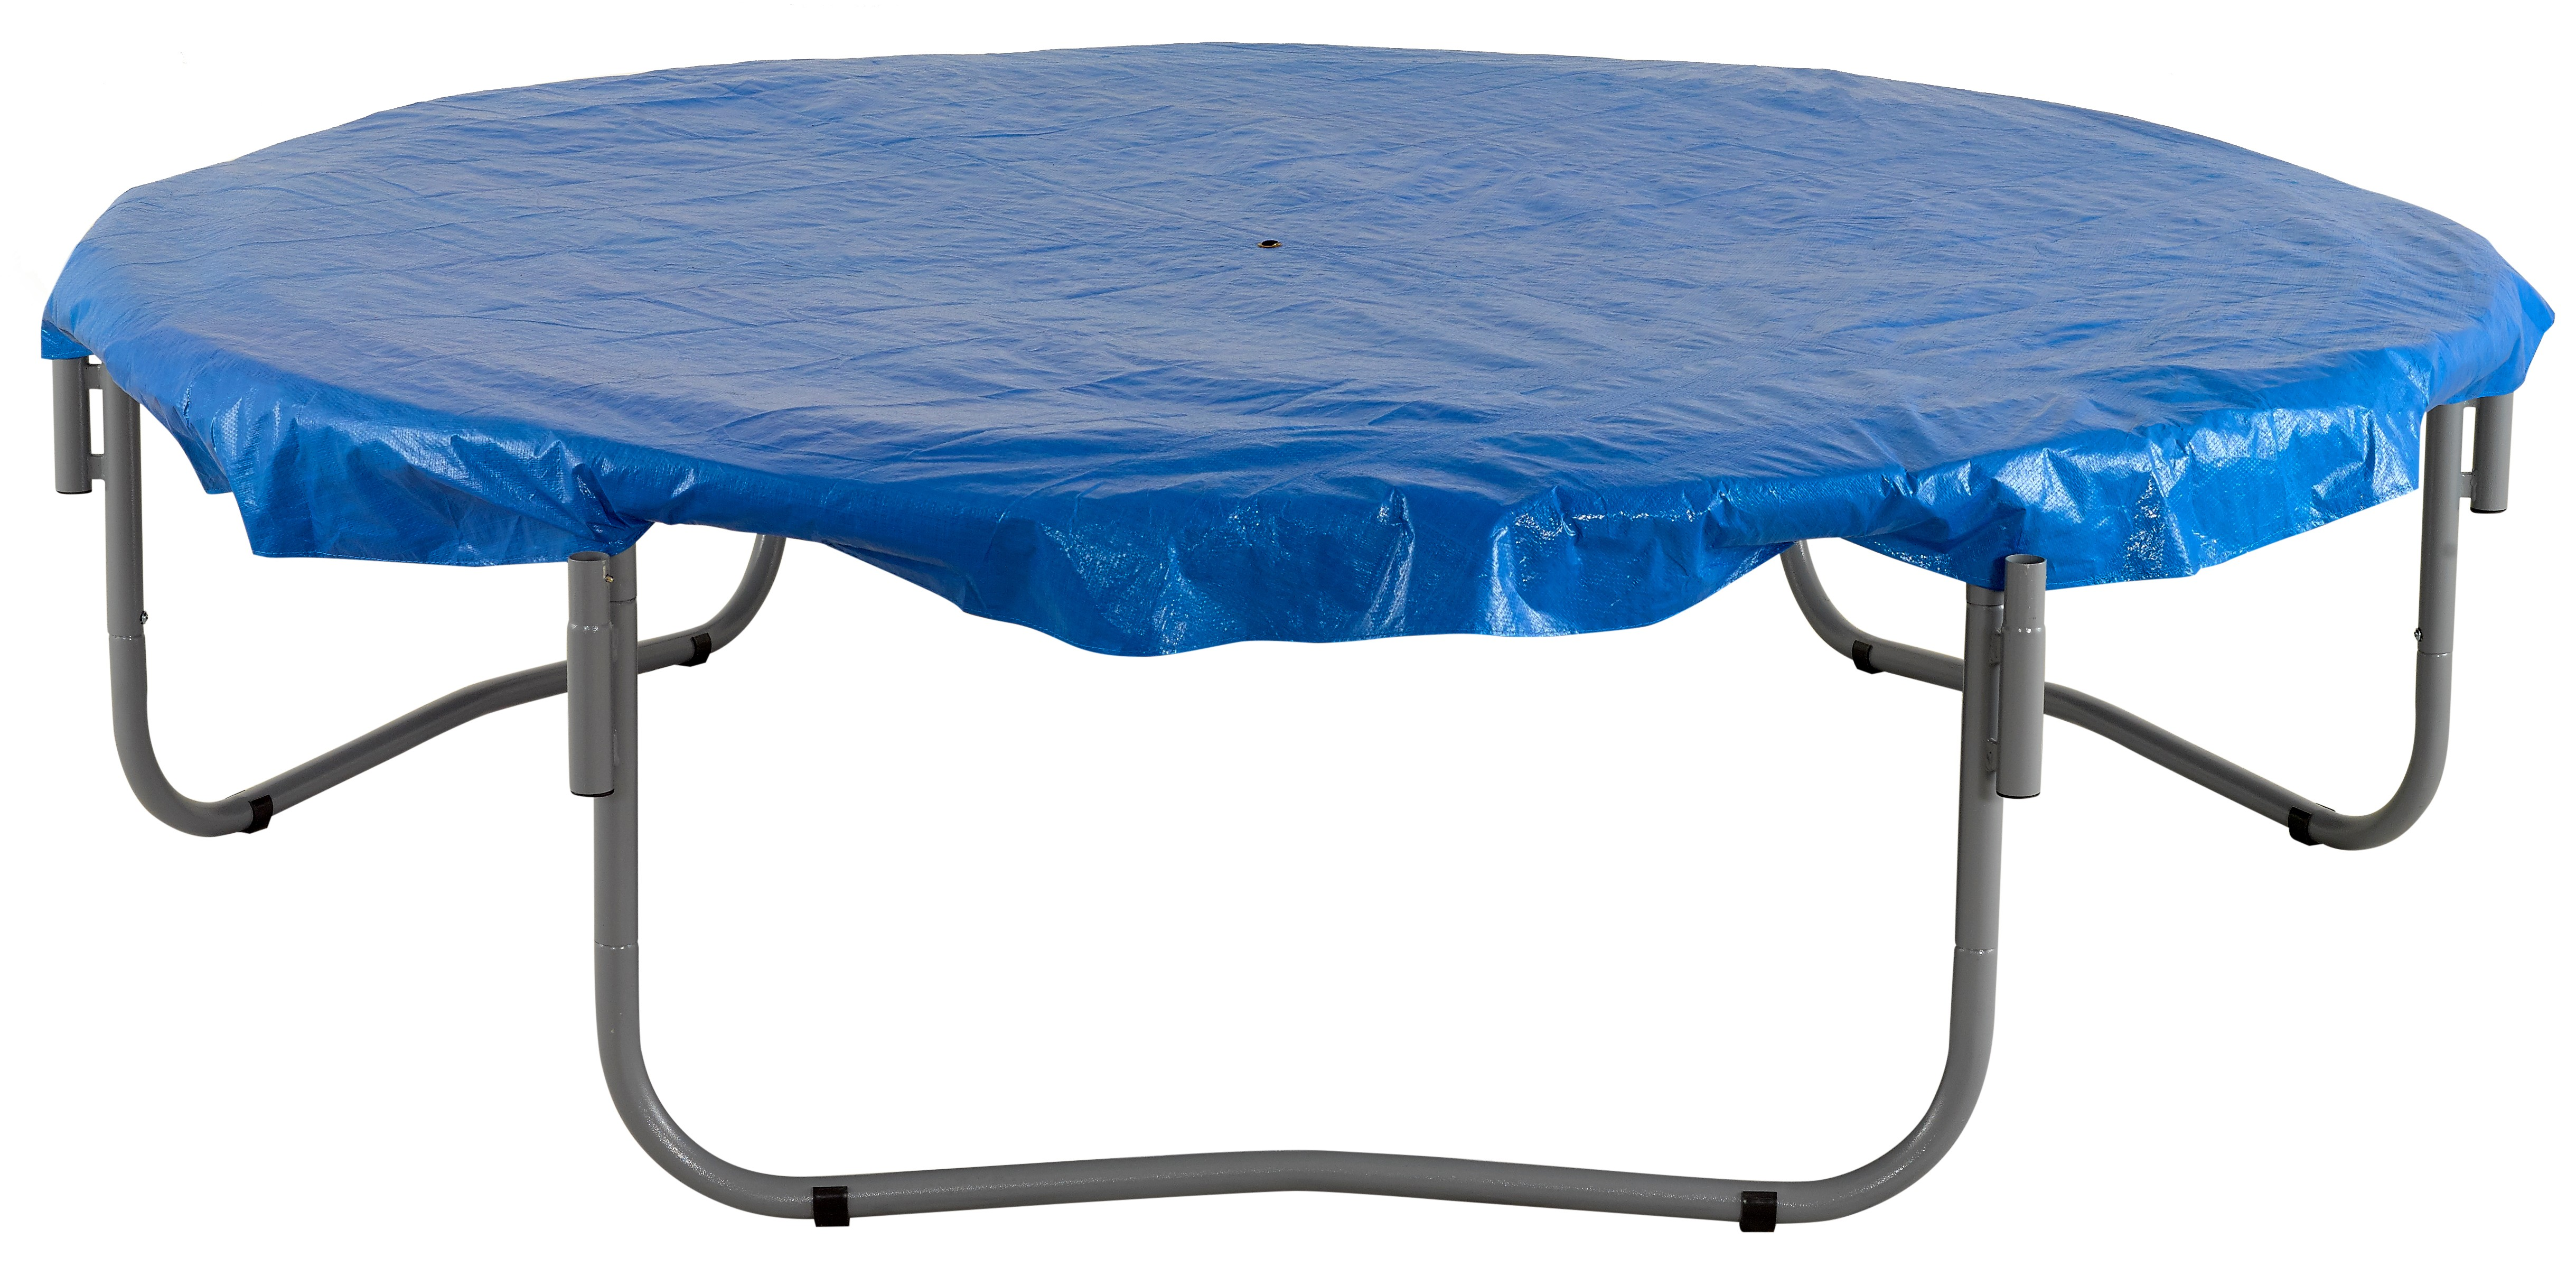 Economy Trampoline Weather Protection Cover from Wind and Rain. Fits for 6 FT. Round Frames - Blue